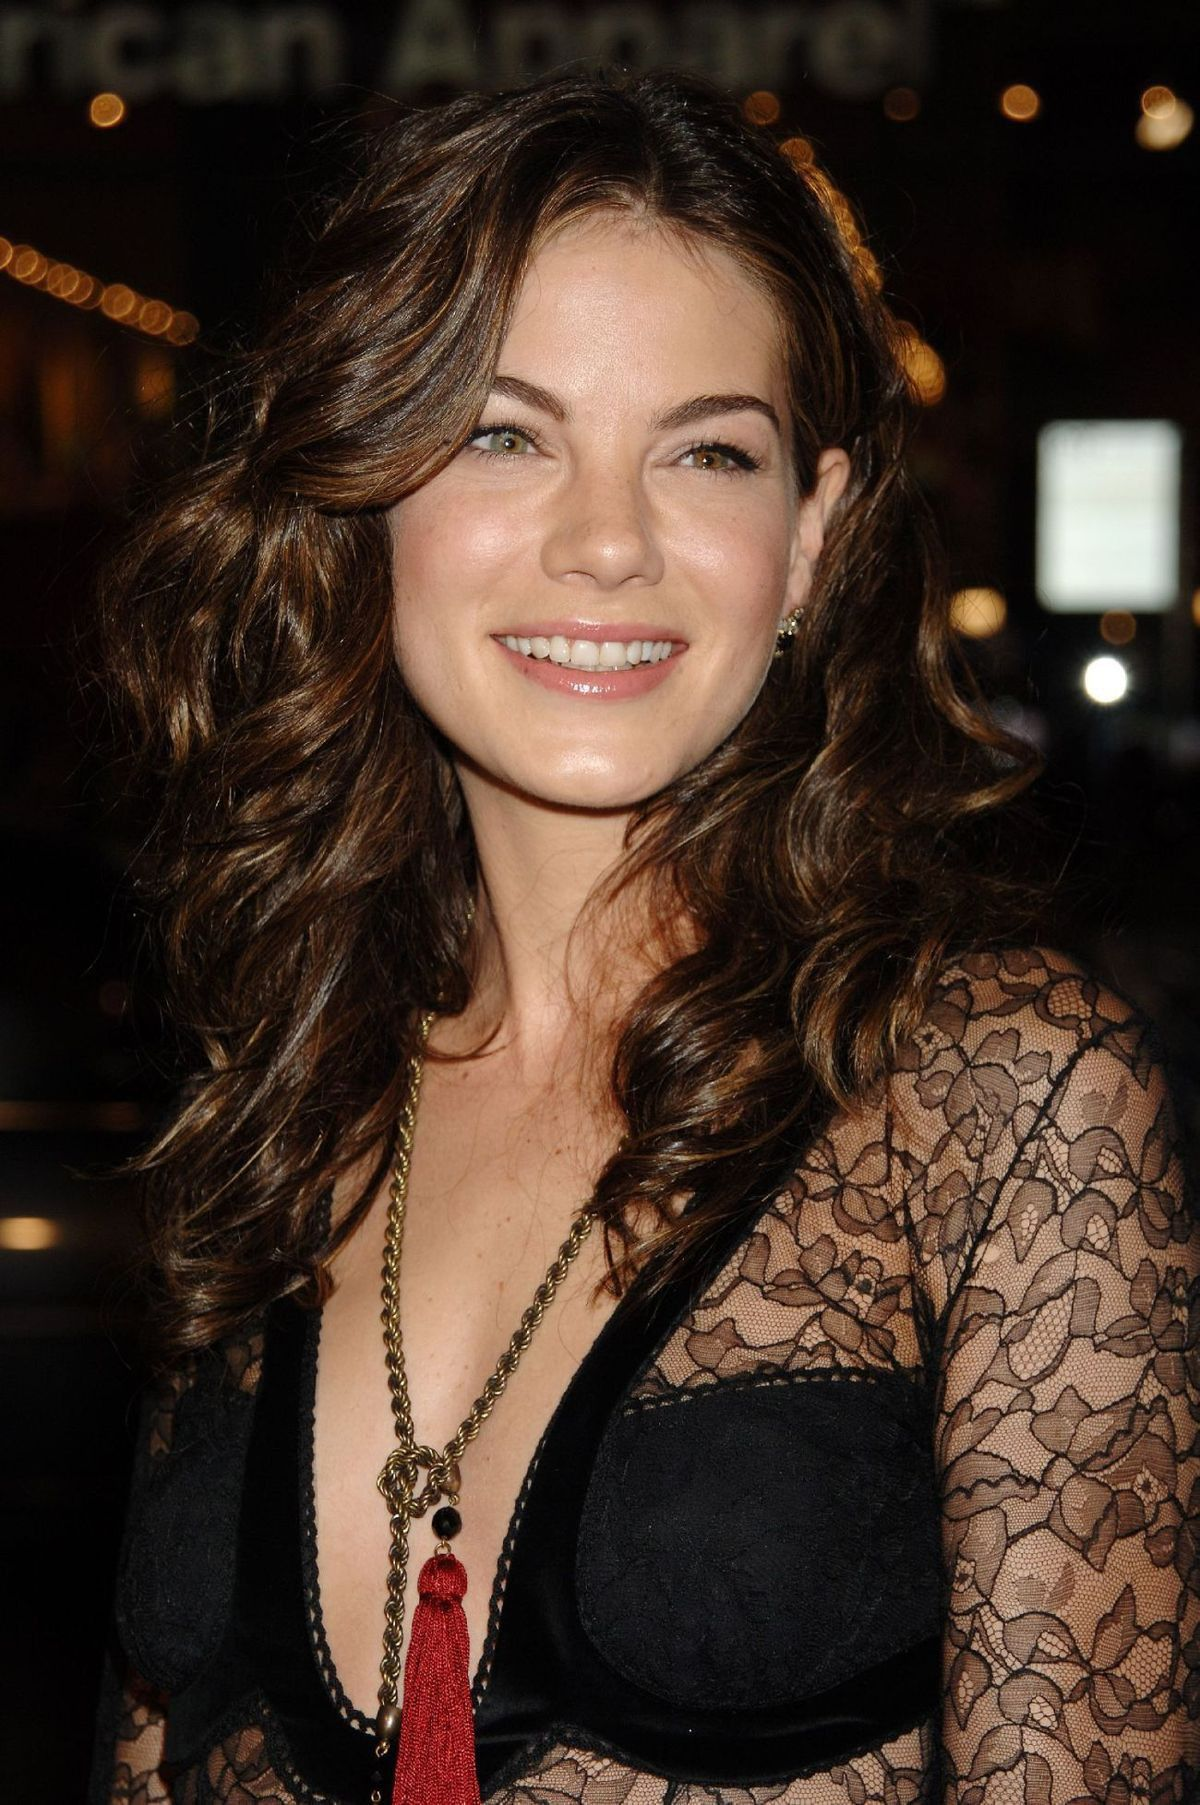 2019 Michelle Monaghan nudes (84 photos), Sexy, Leaked, Instagram, in bikini 2020